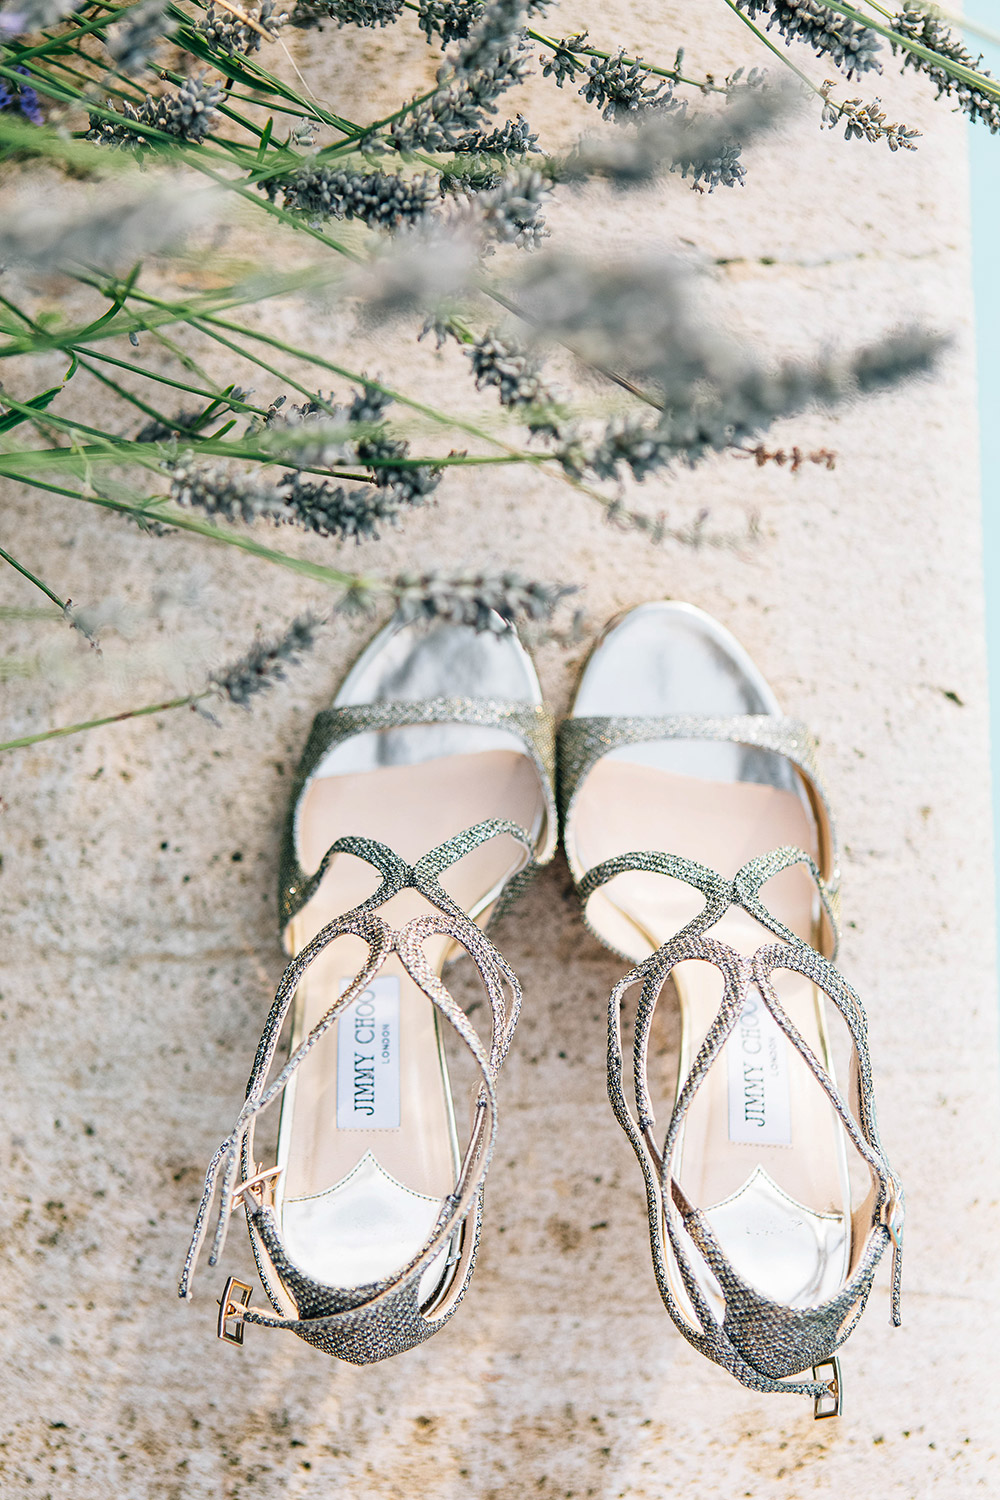 Jimmy Choo bridal shoes. Bluecicada Photography. www.theweddingnotebook.com